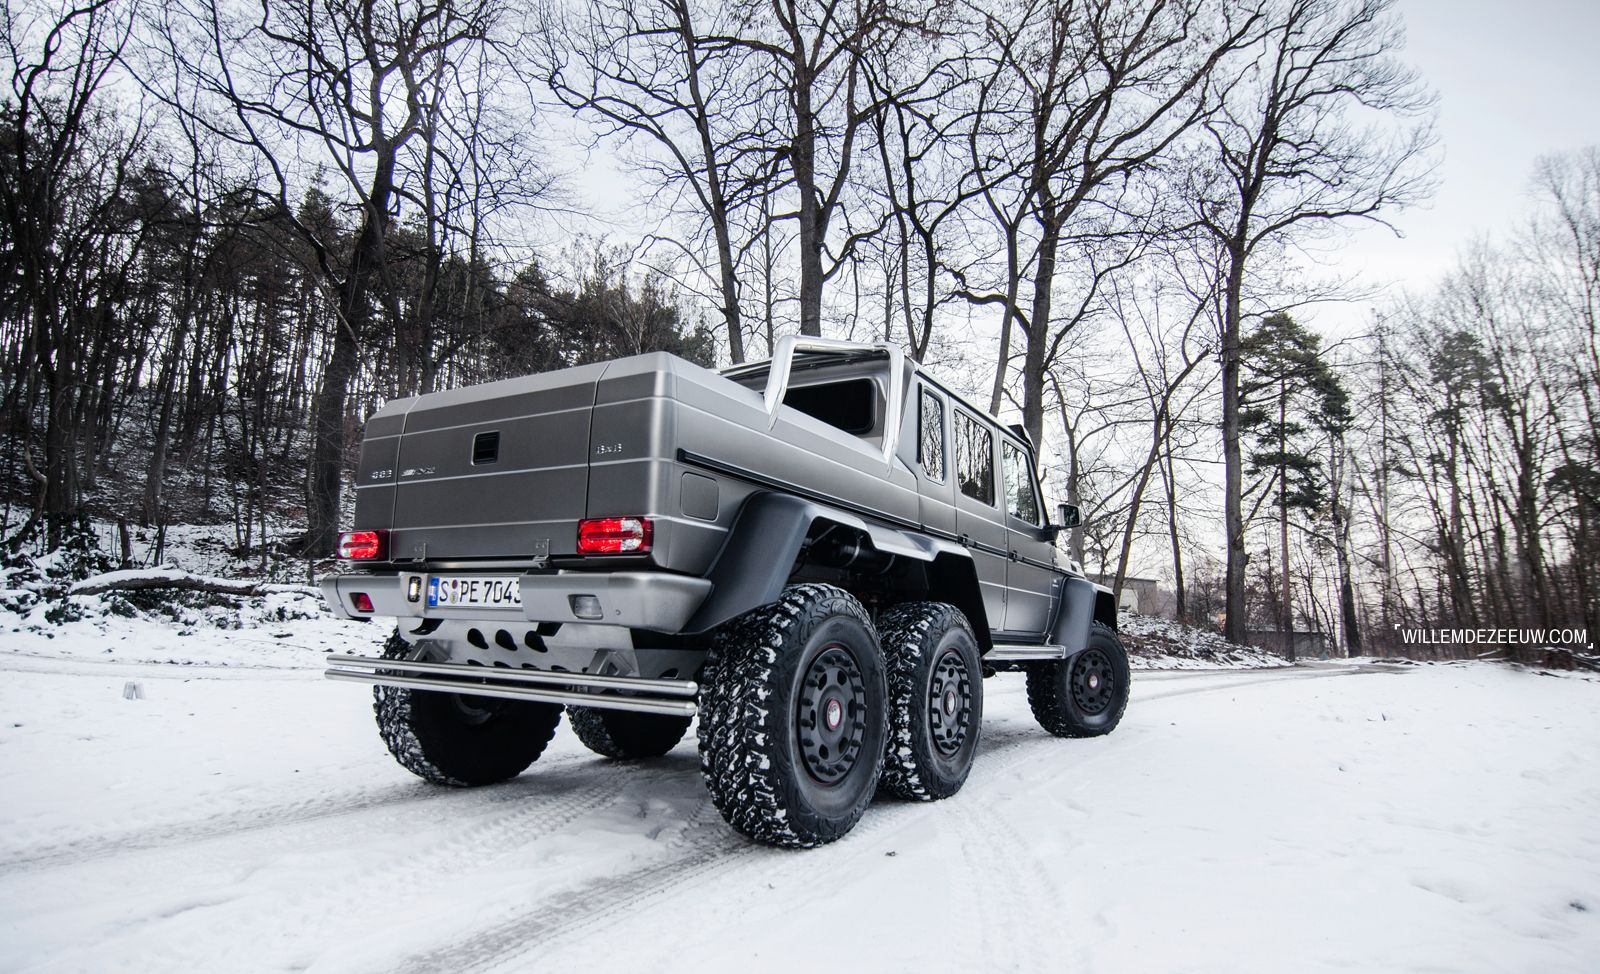 the Mercedes-Benz G63 AMG 6x6 in winter, around the forest